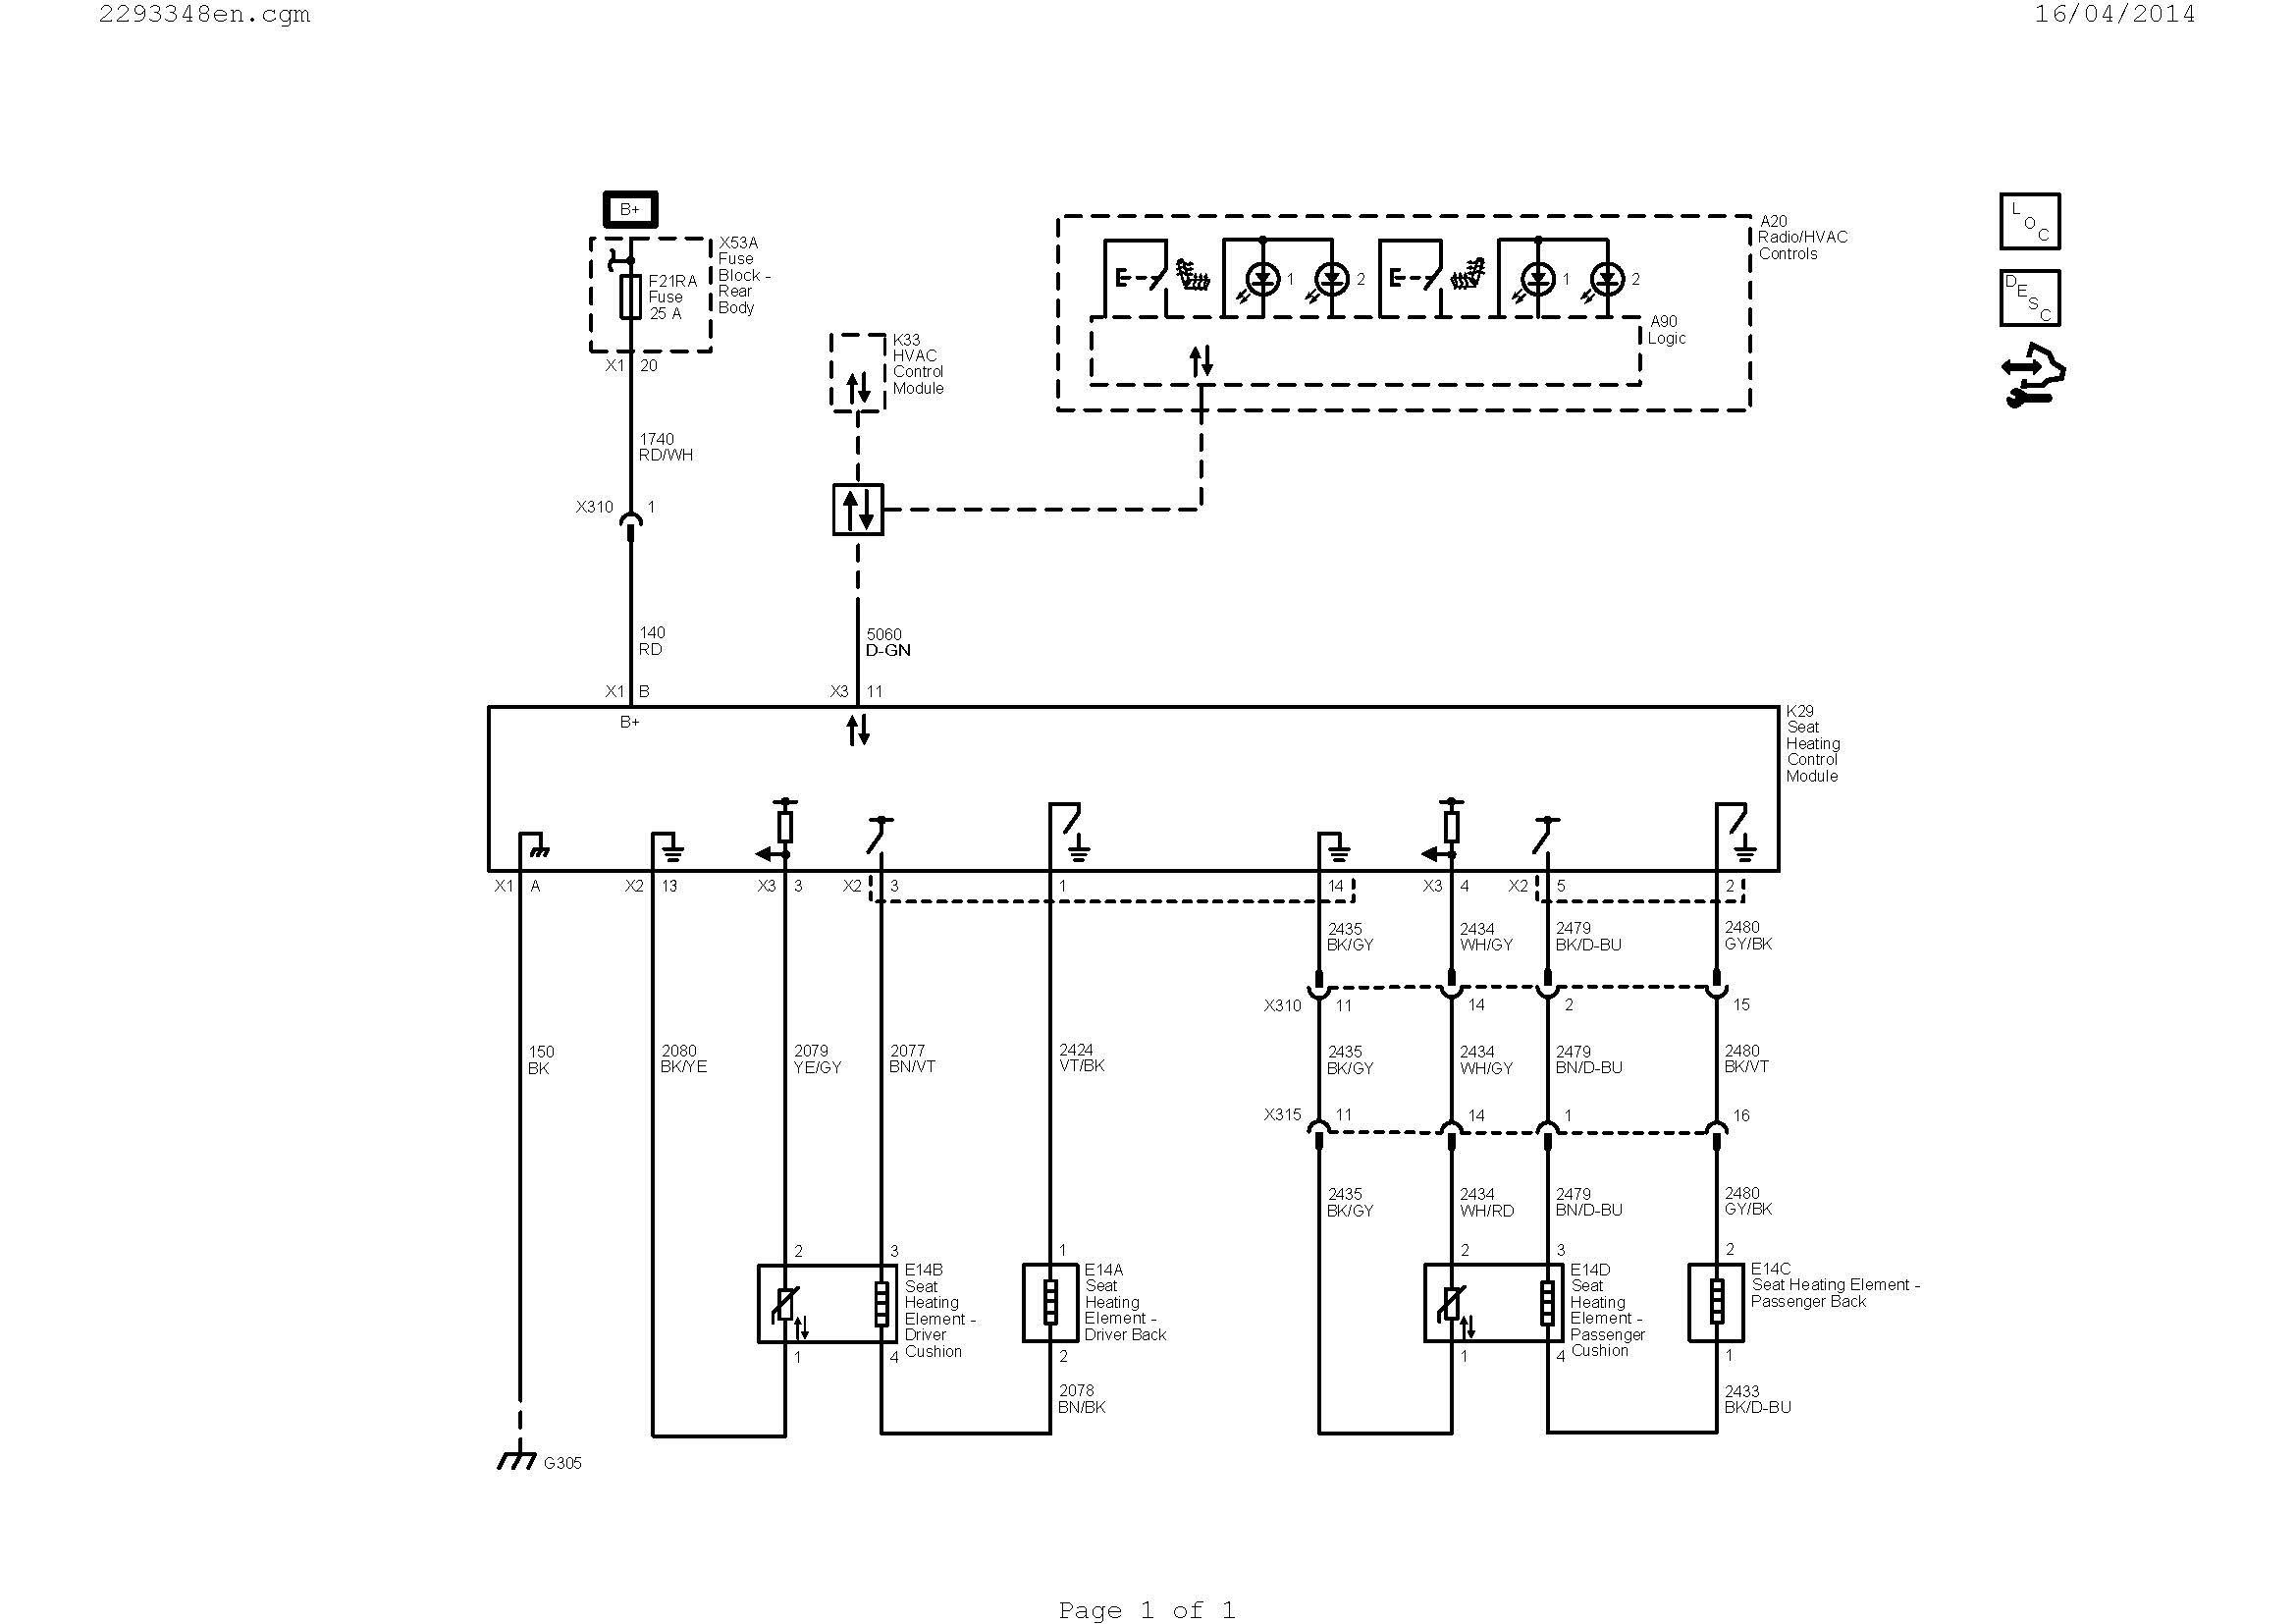 hvac wiring diagram Download-Wiring Diagram Car Valid Wiring Diagram Ac Valid Hvac Diagram Best Hvac Diagram 0d – Wire 7-h